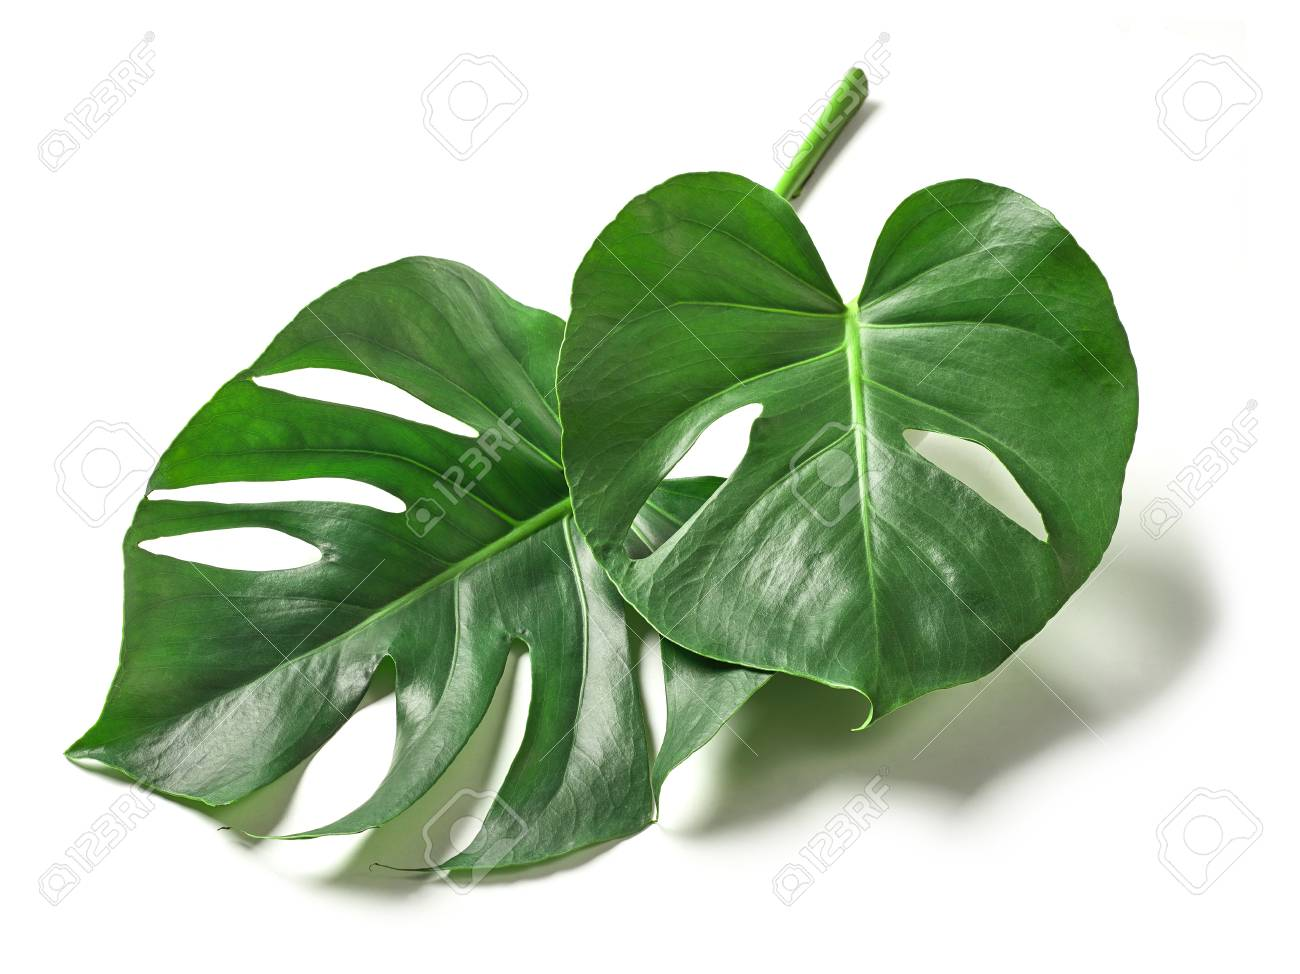 Tropical Leaves Of Monstera Plant Isolated On White Background Stock Photo Picture And Royalty Free Image Image 89191891 Tropical leaves background with white banner. tropical leaves of monstera plant isolated on white background